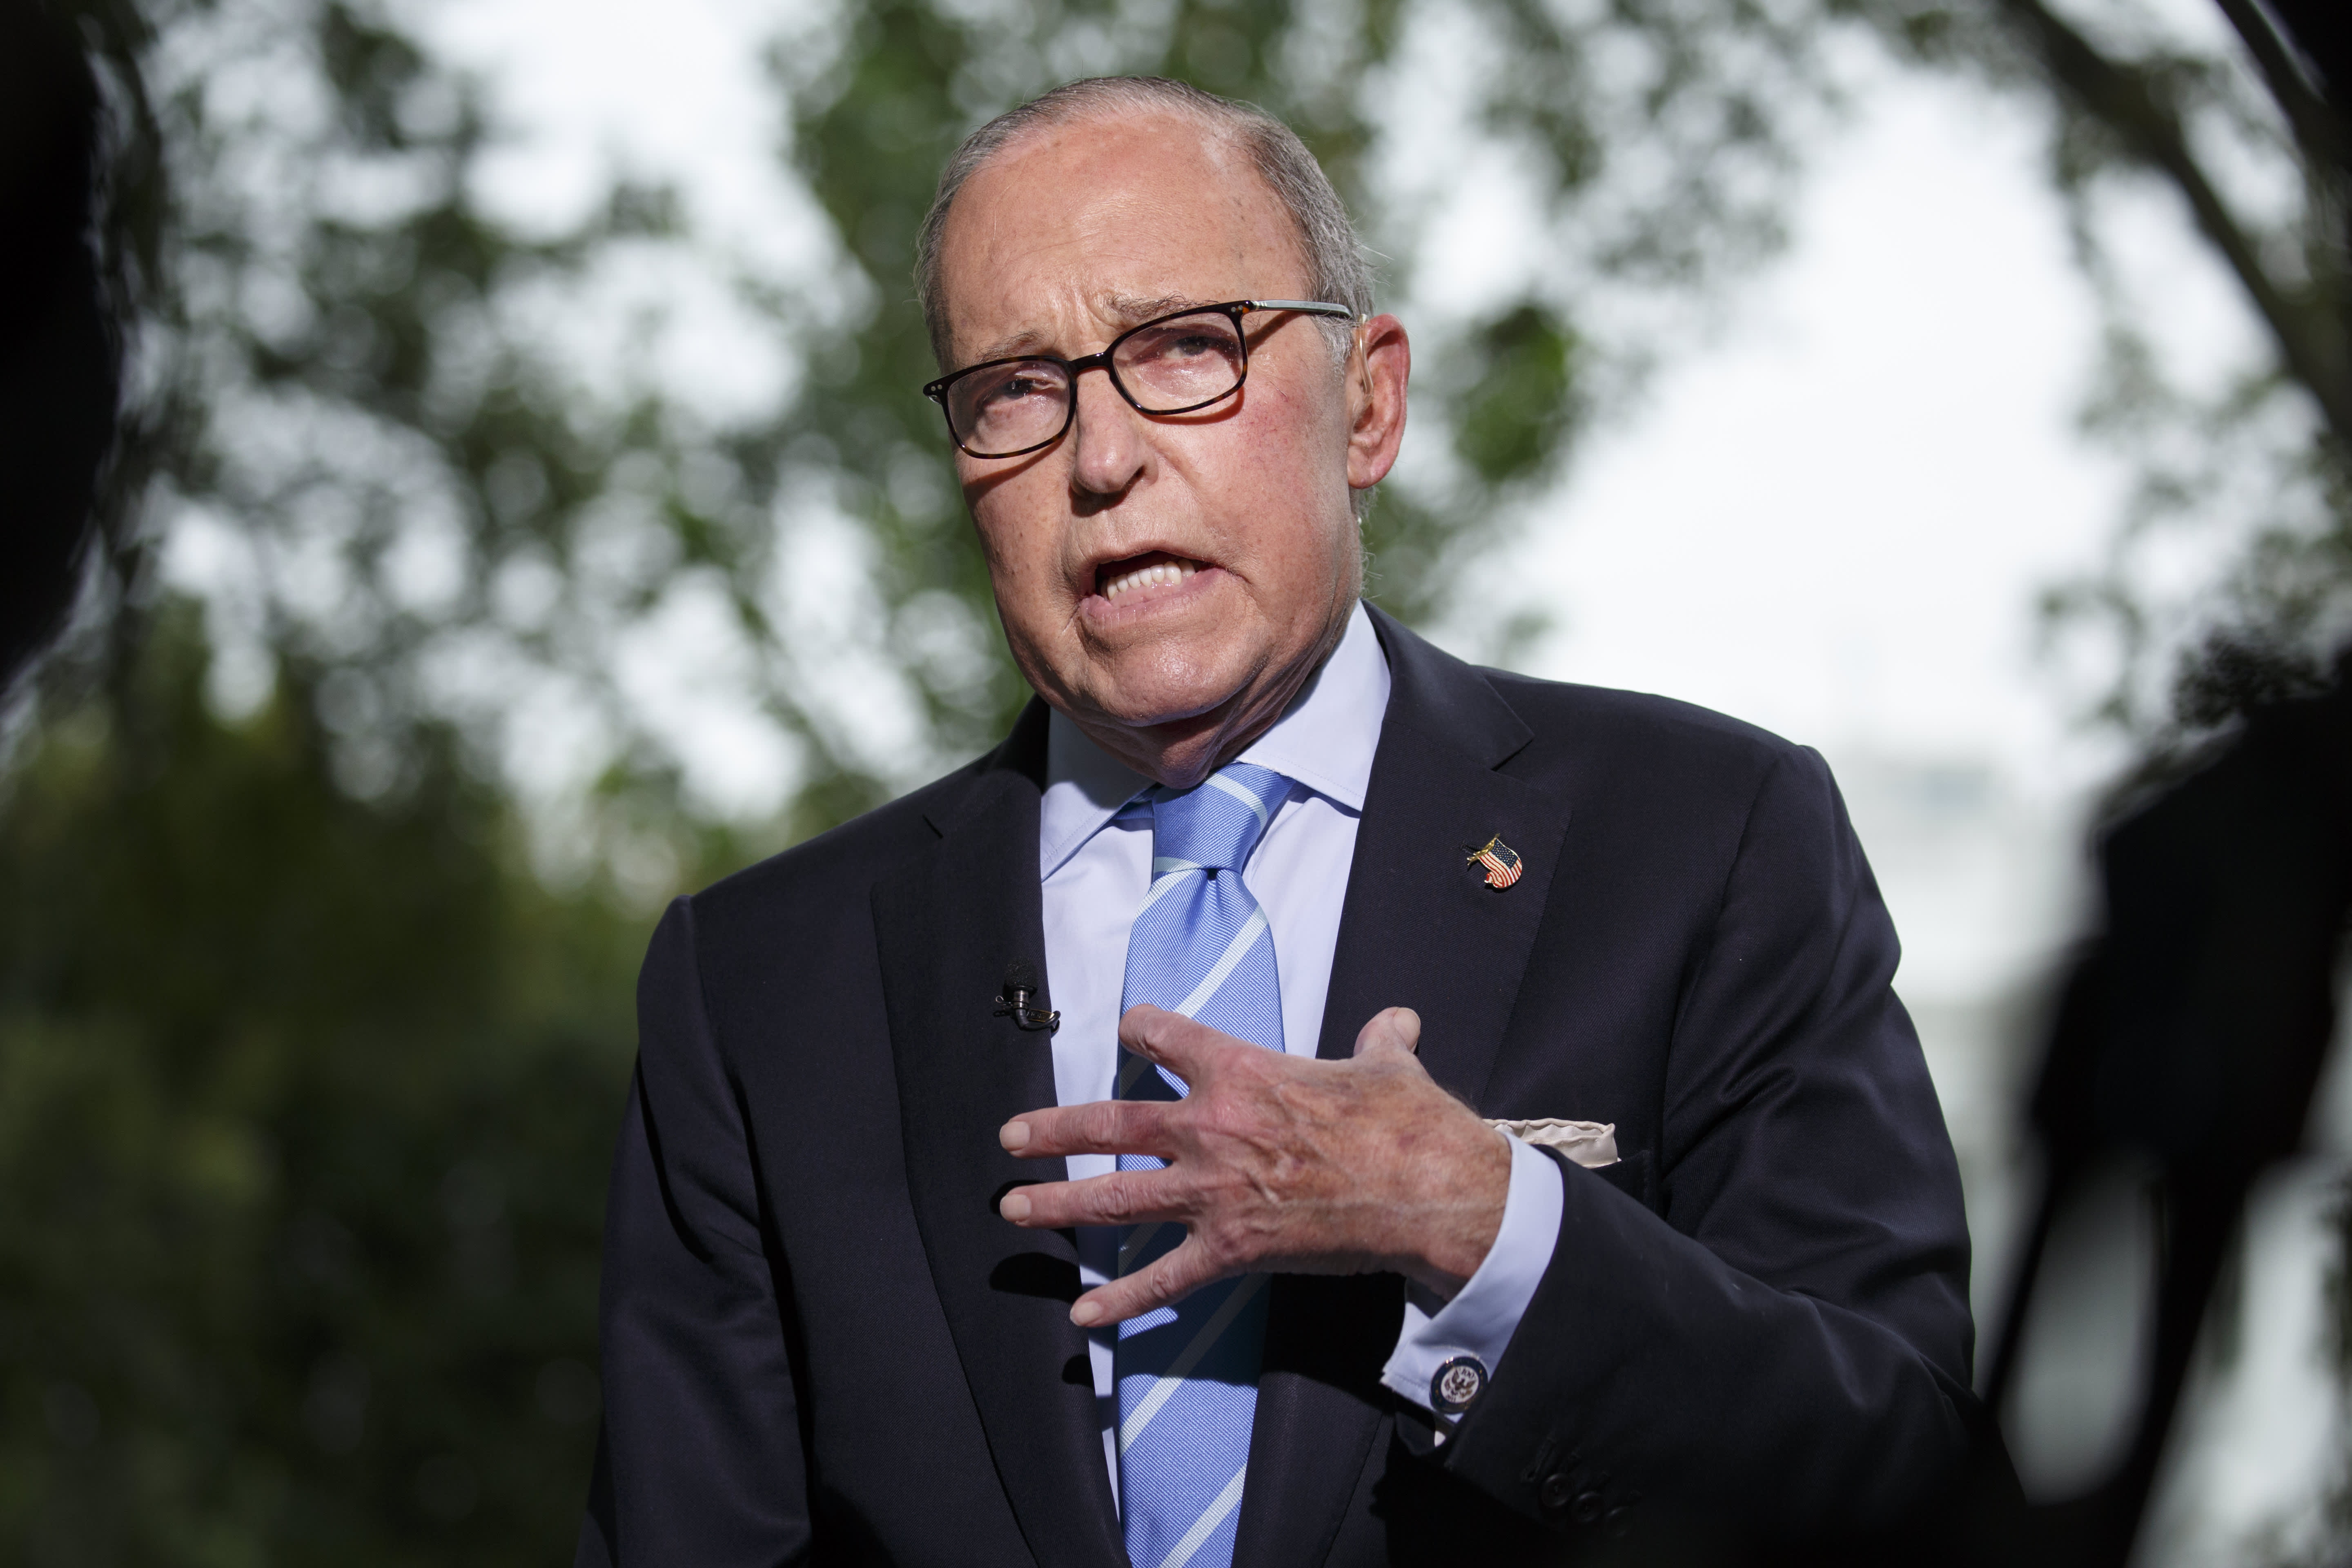 Kudlow defends Trump's Ukraine call: 'Look, it was a congratulatory call, corruption came up'